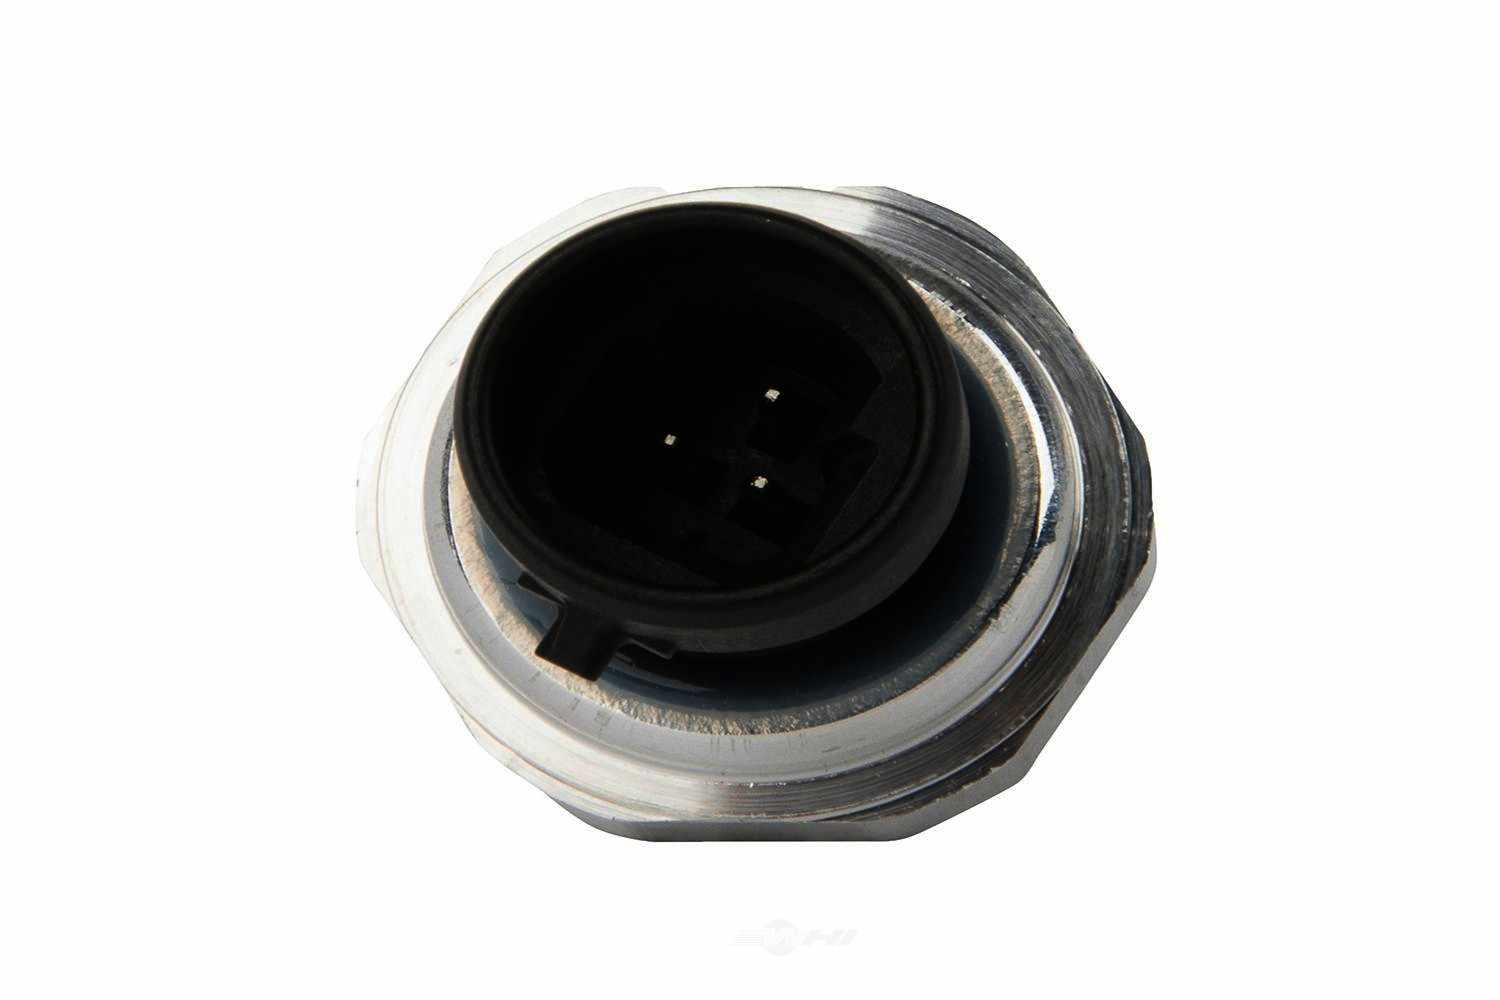 ACDELCO GM ORIGINAL EQUIPMENT - Fuel Pump and Engine Oil Pressure Indicator Switch - DCB 12677836